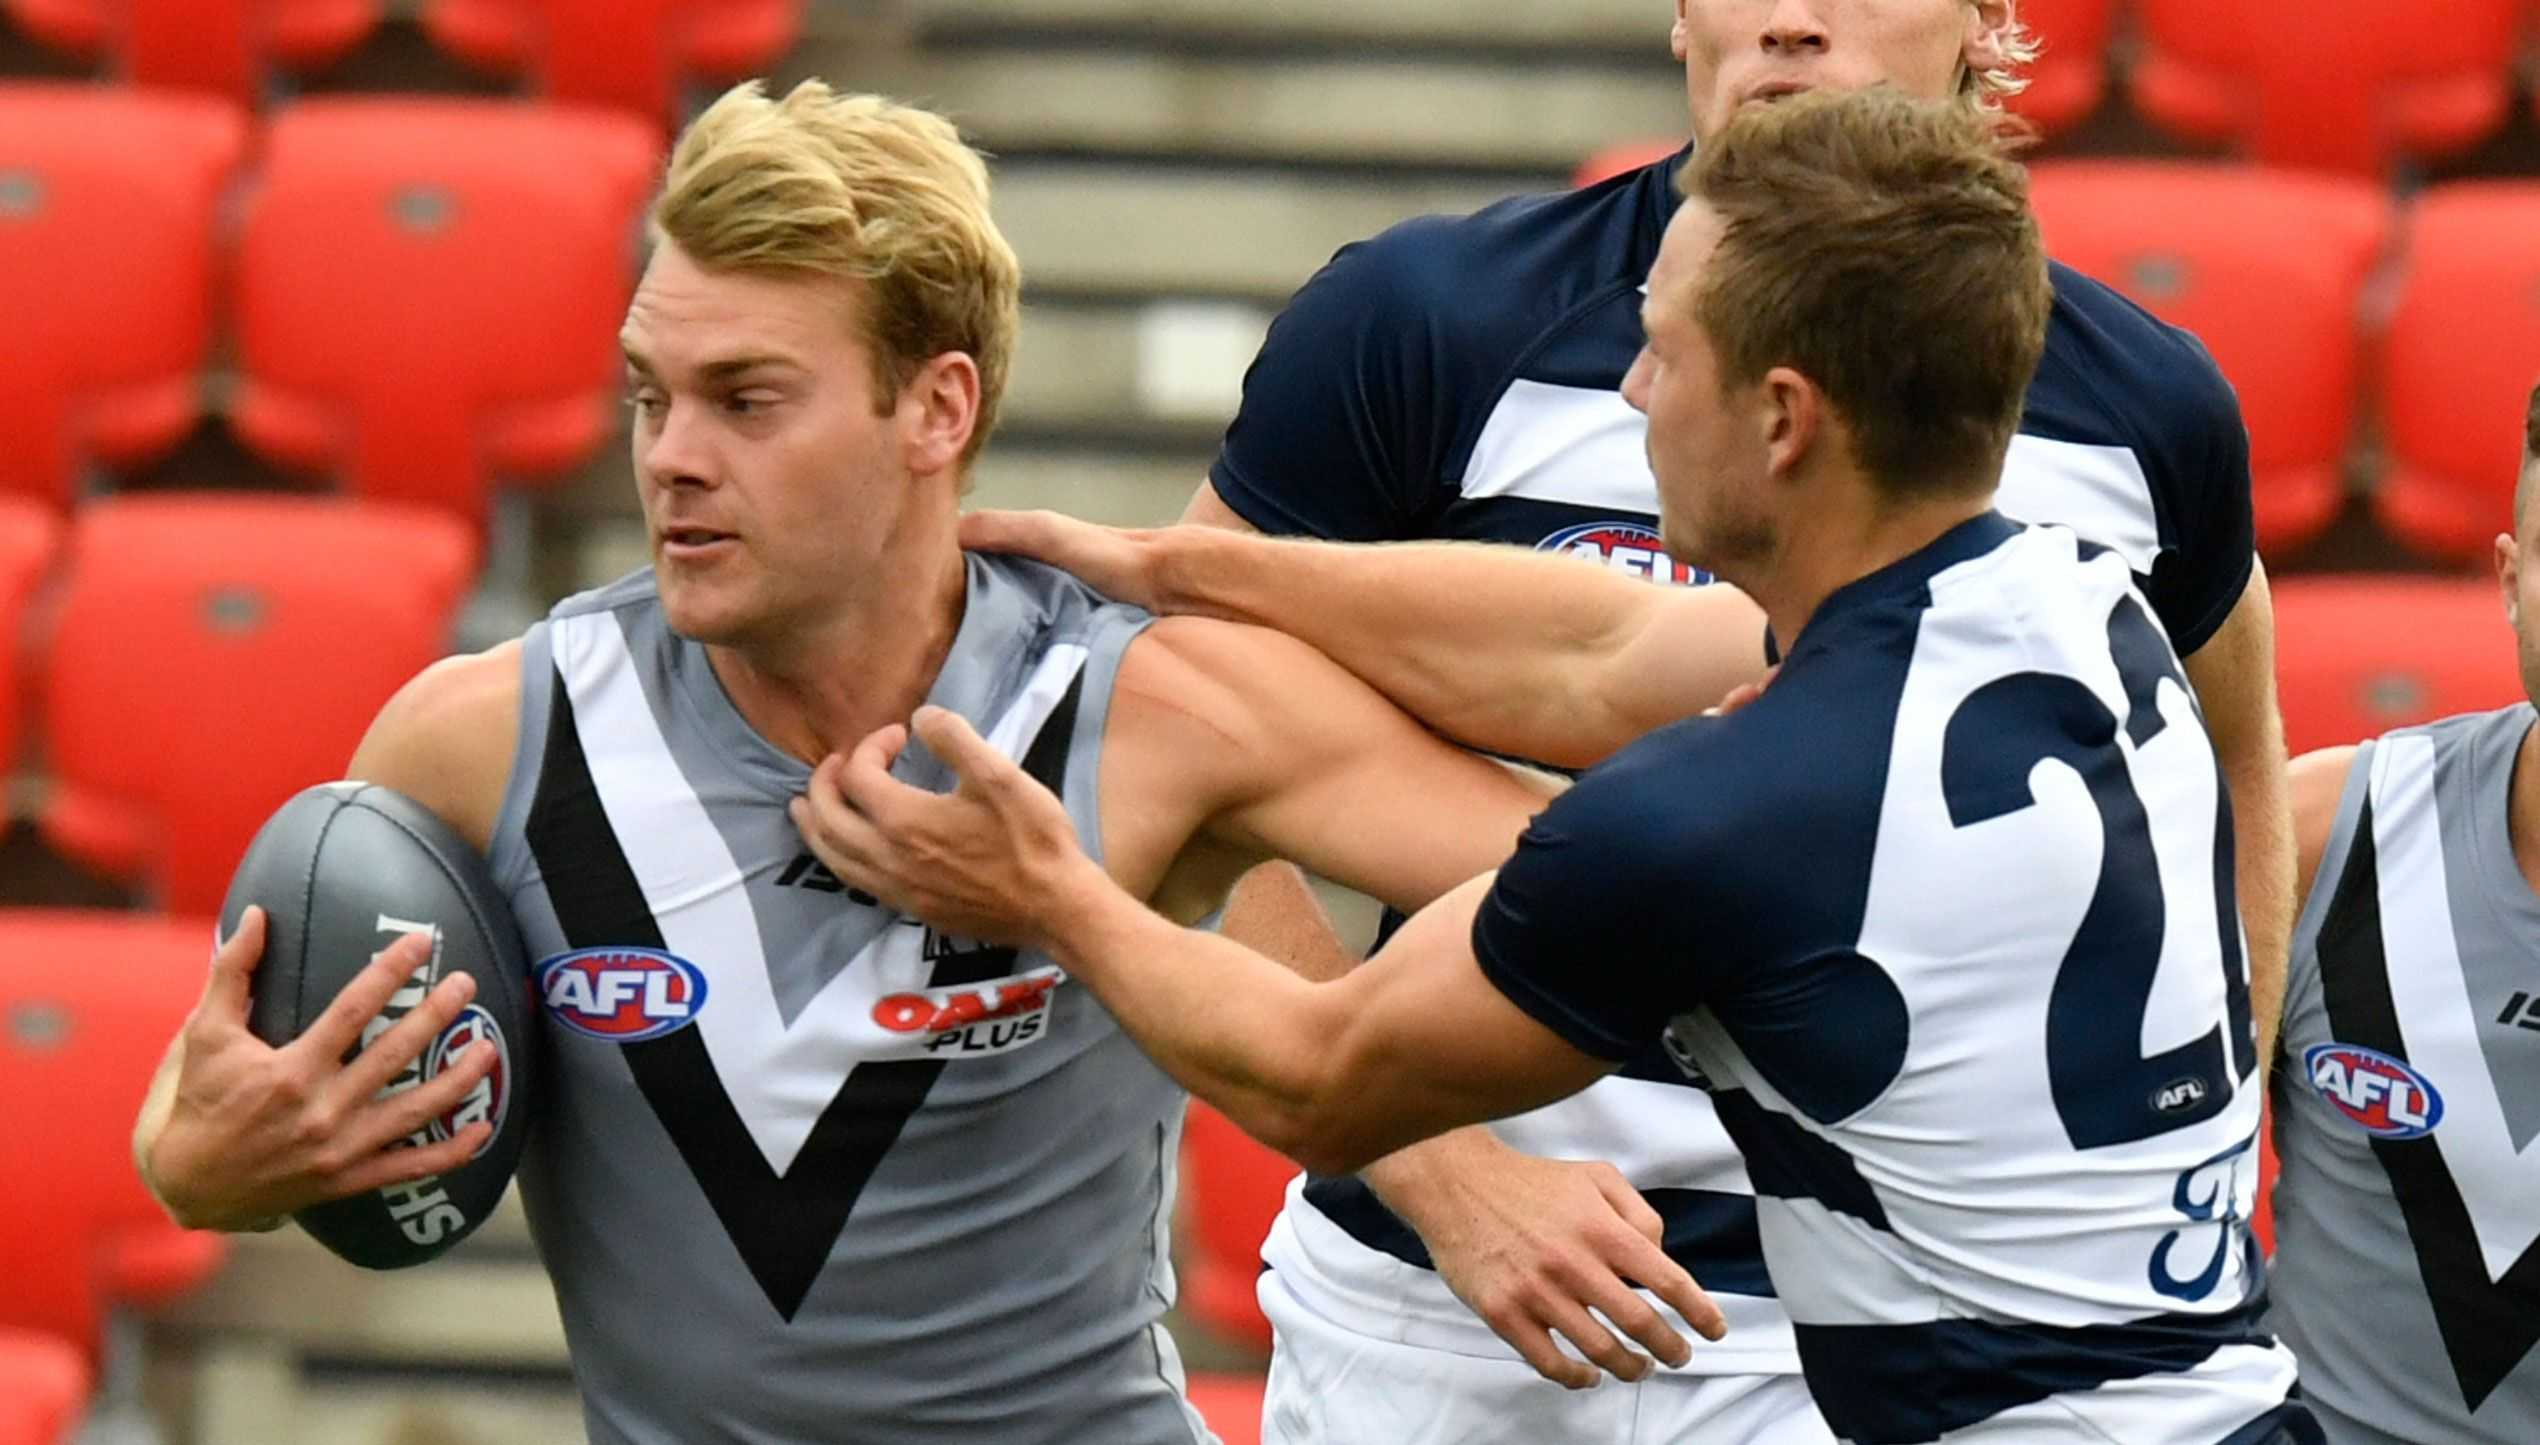 Jack Watts in action during AFLX.